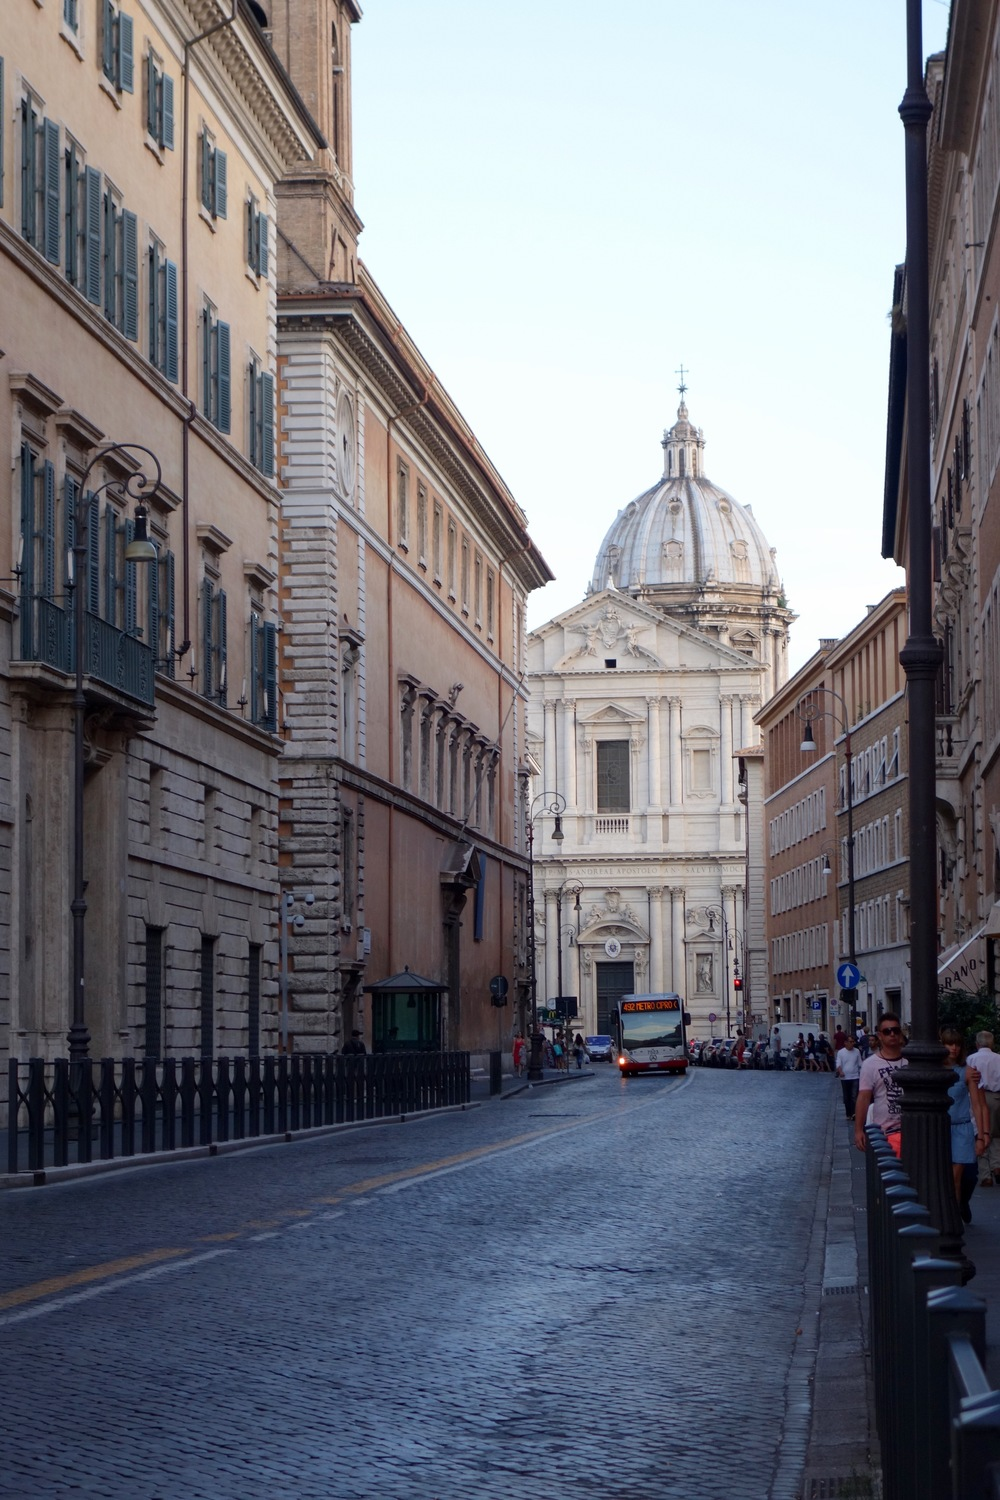 The dome of St. Peter's just casually peaking through the streets.